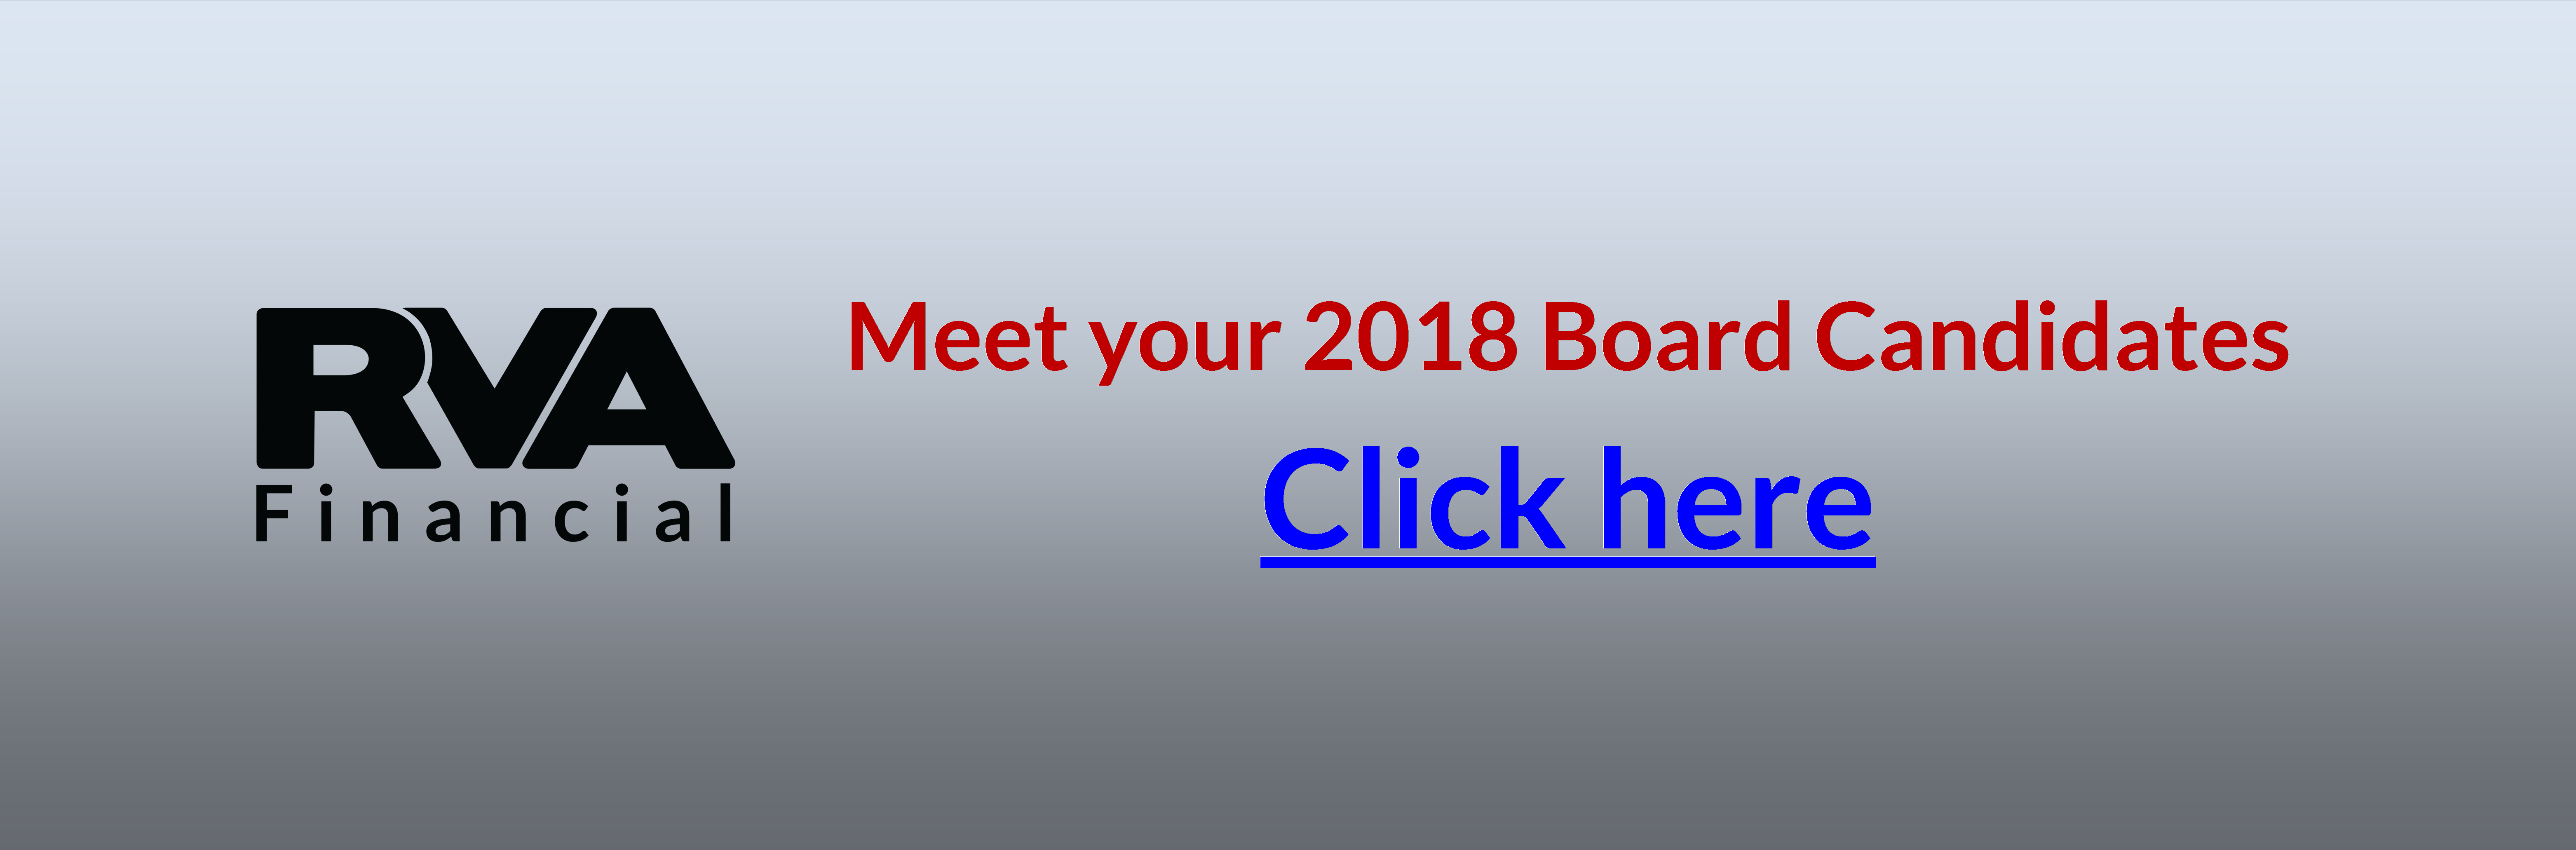 Click here for 2018 Board Candidates